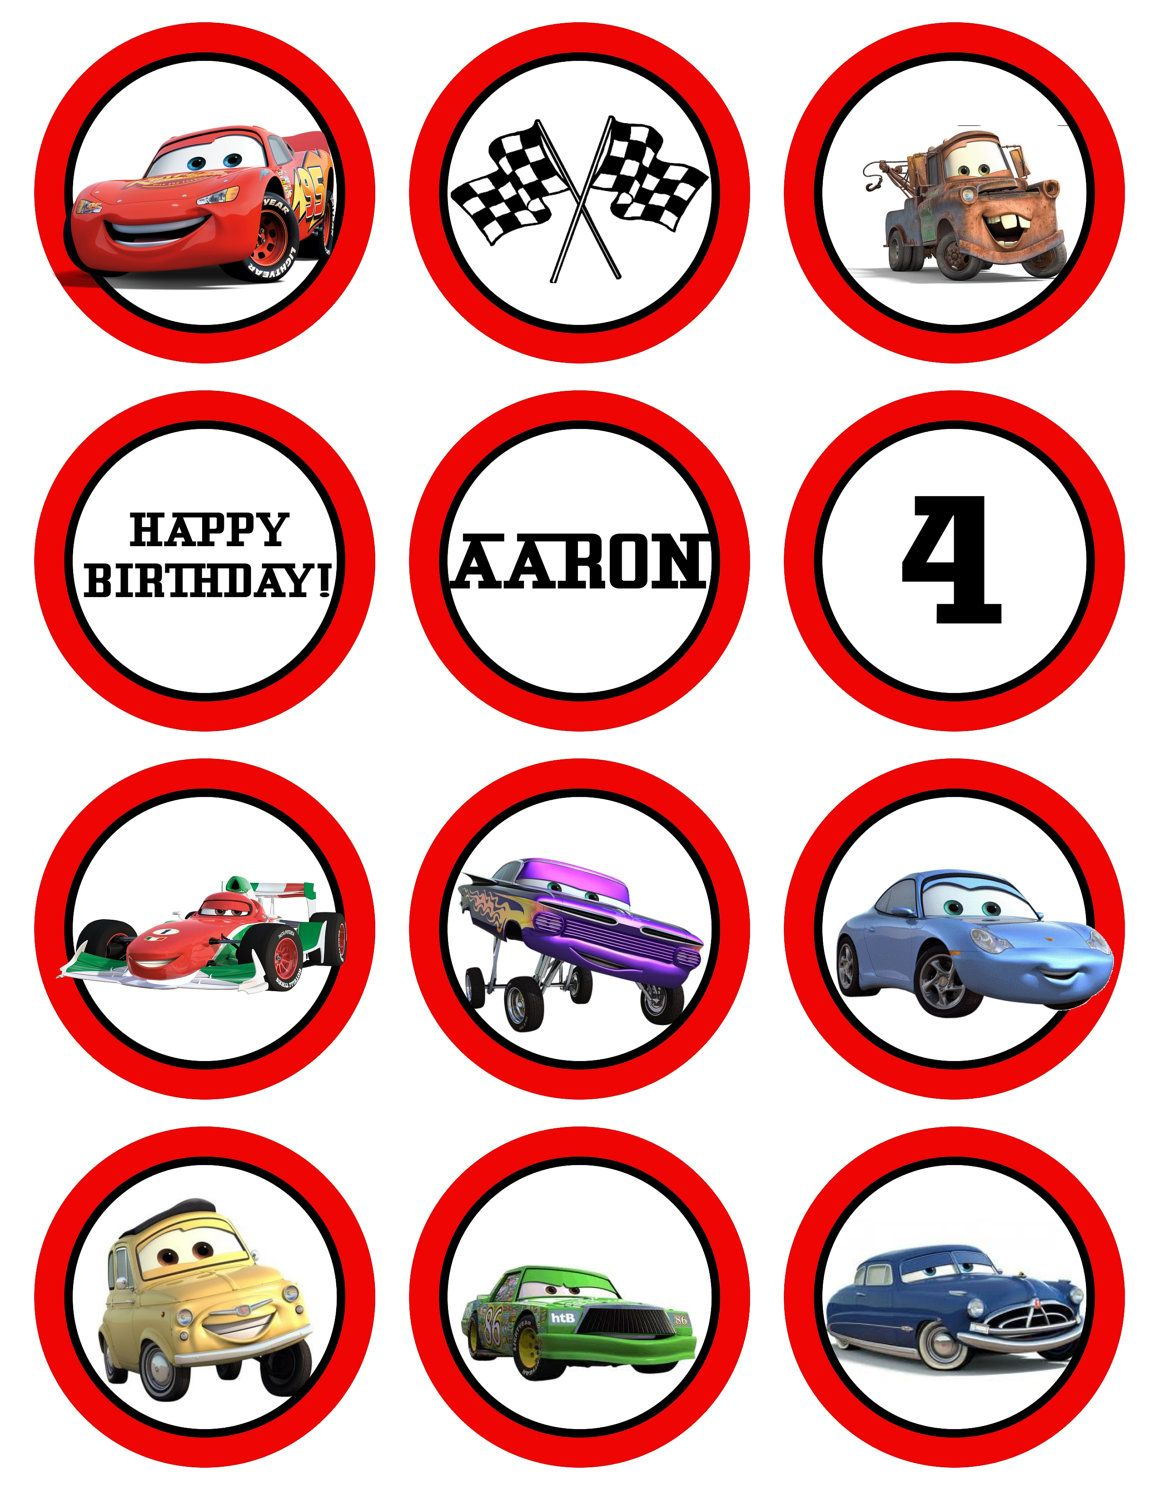 Disney The Cars Printable Birthday Party Cupcake Toppers